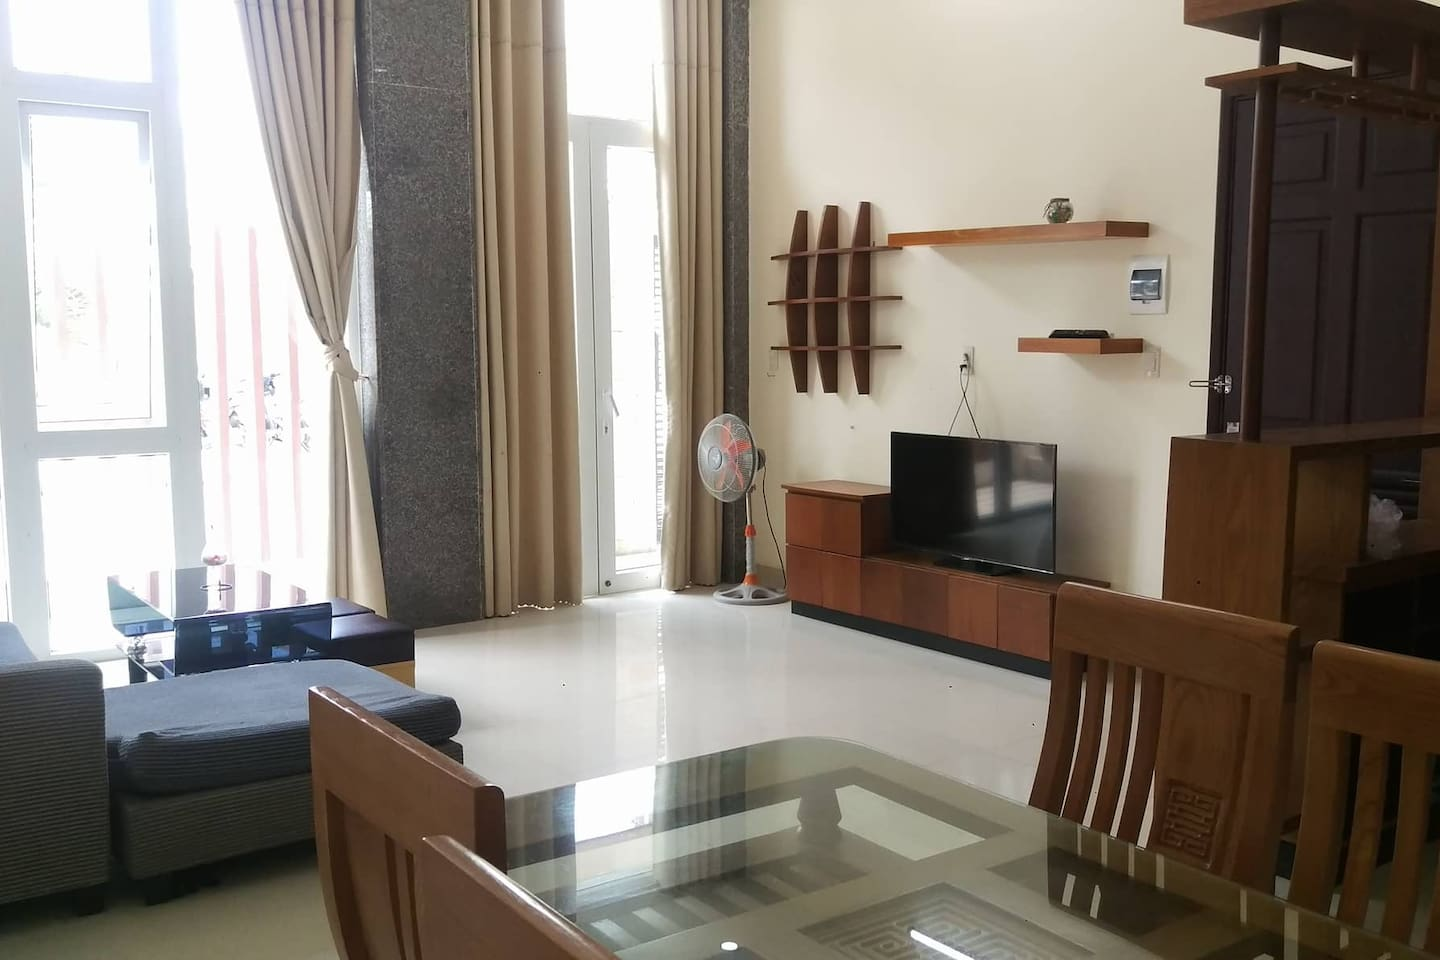 One bedroom apartment on the ground floor